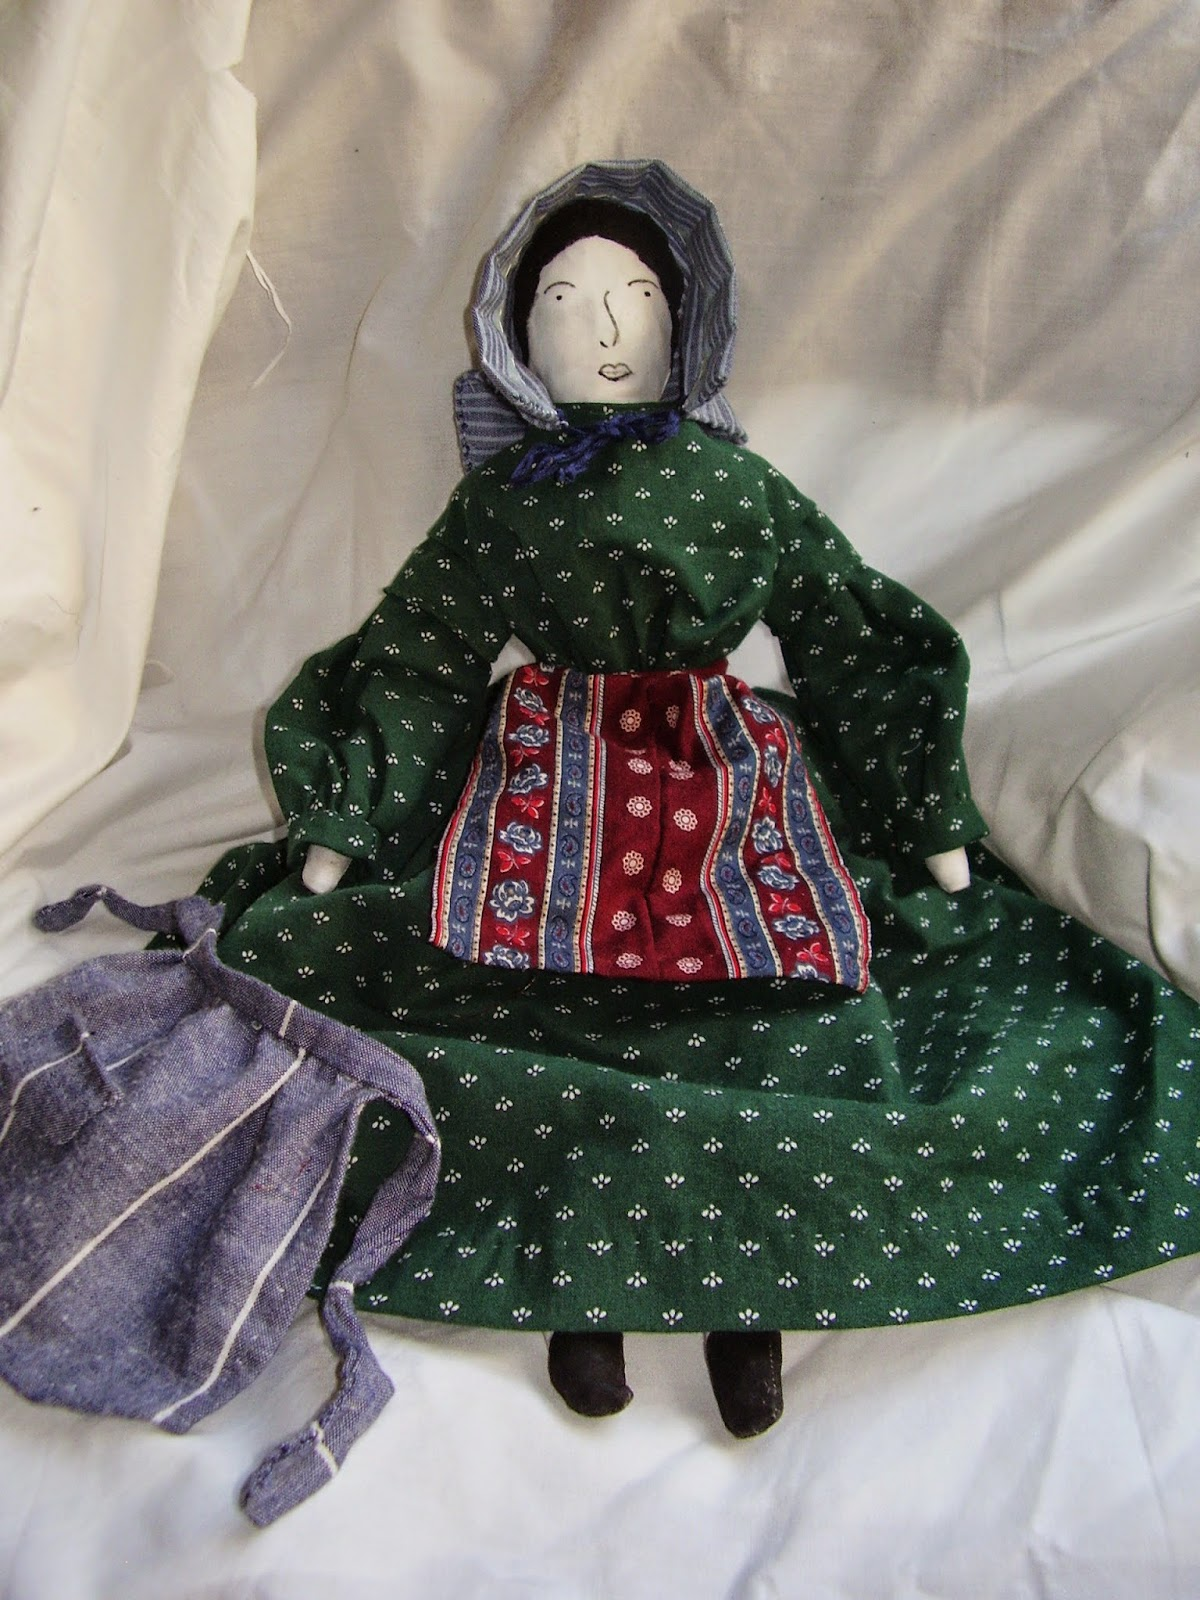 1850s/60s style cloth doll from HMP-400 pattern.